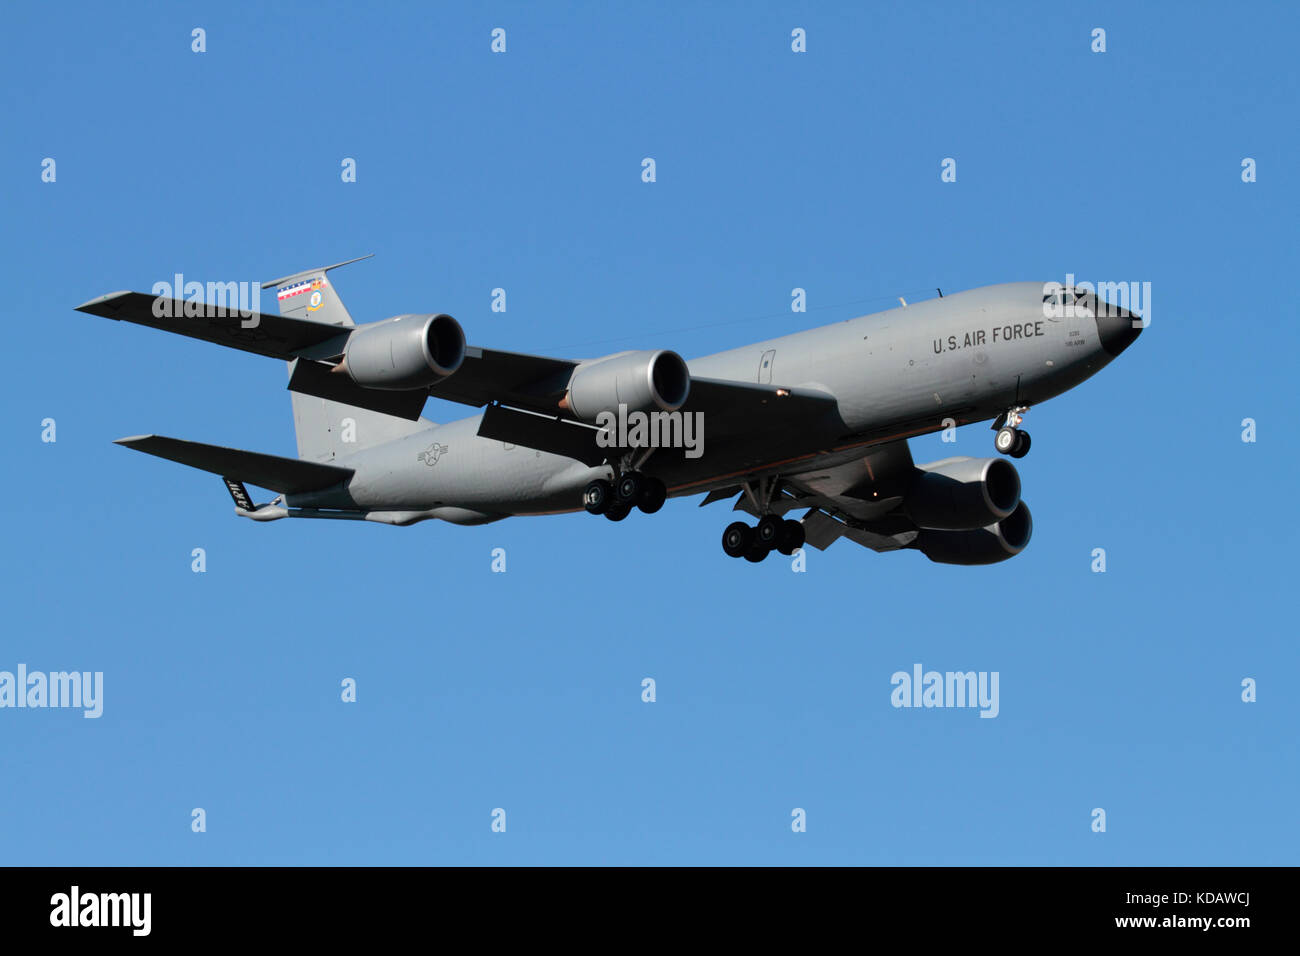 US Air Force KC-135 Stratotanker aerial refuelling aircraft on approach Stock Photo